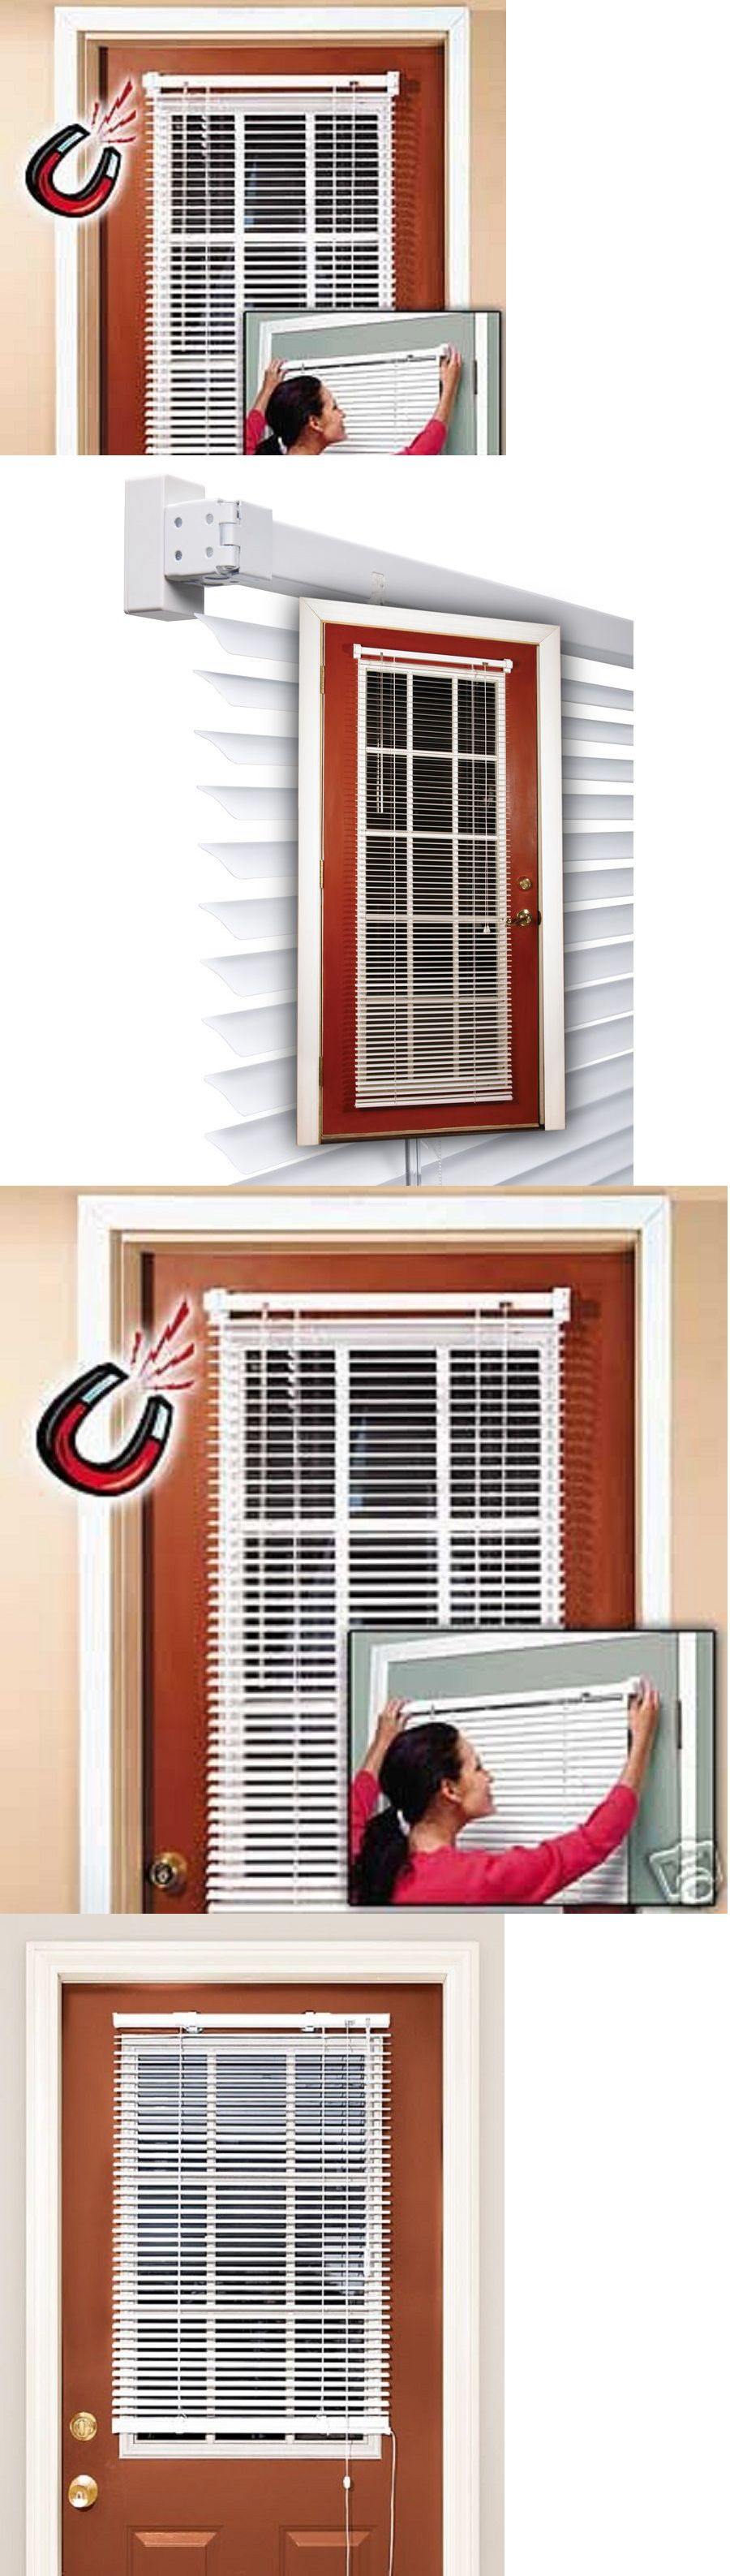 Easy Install Magnetic Window Blinds White Snaps On Off No Tools Choose Size Blinds For Windows Easy Install Blinds